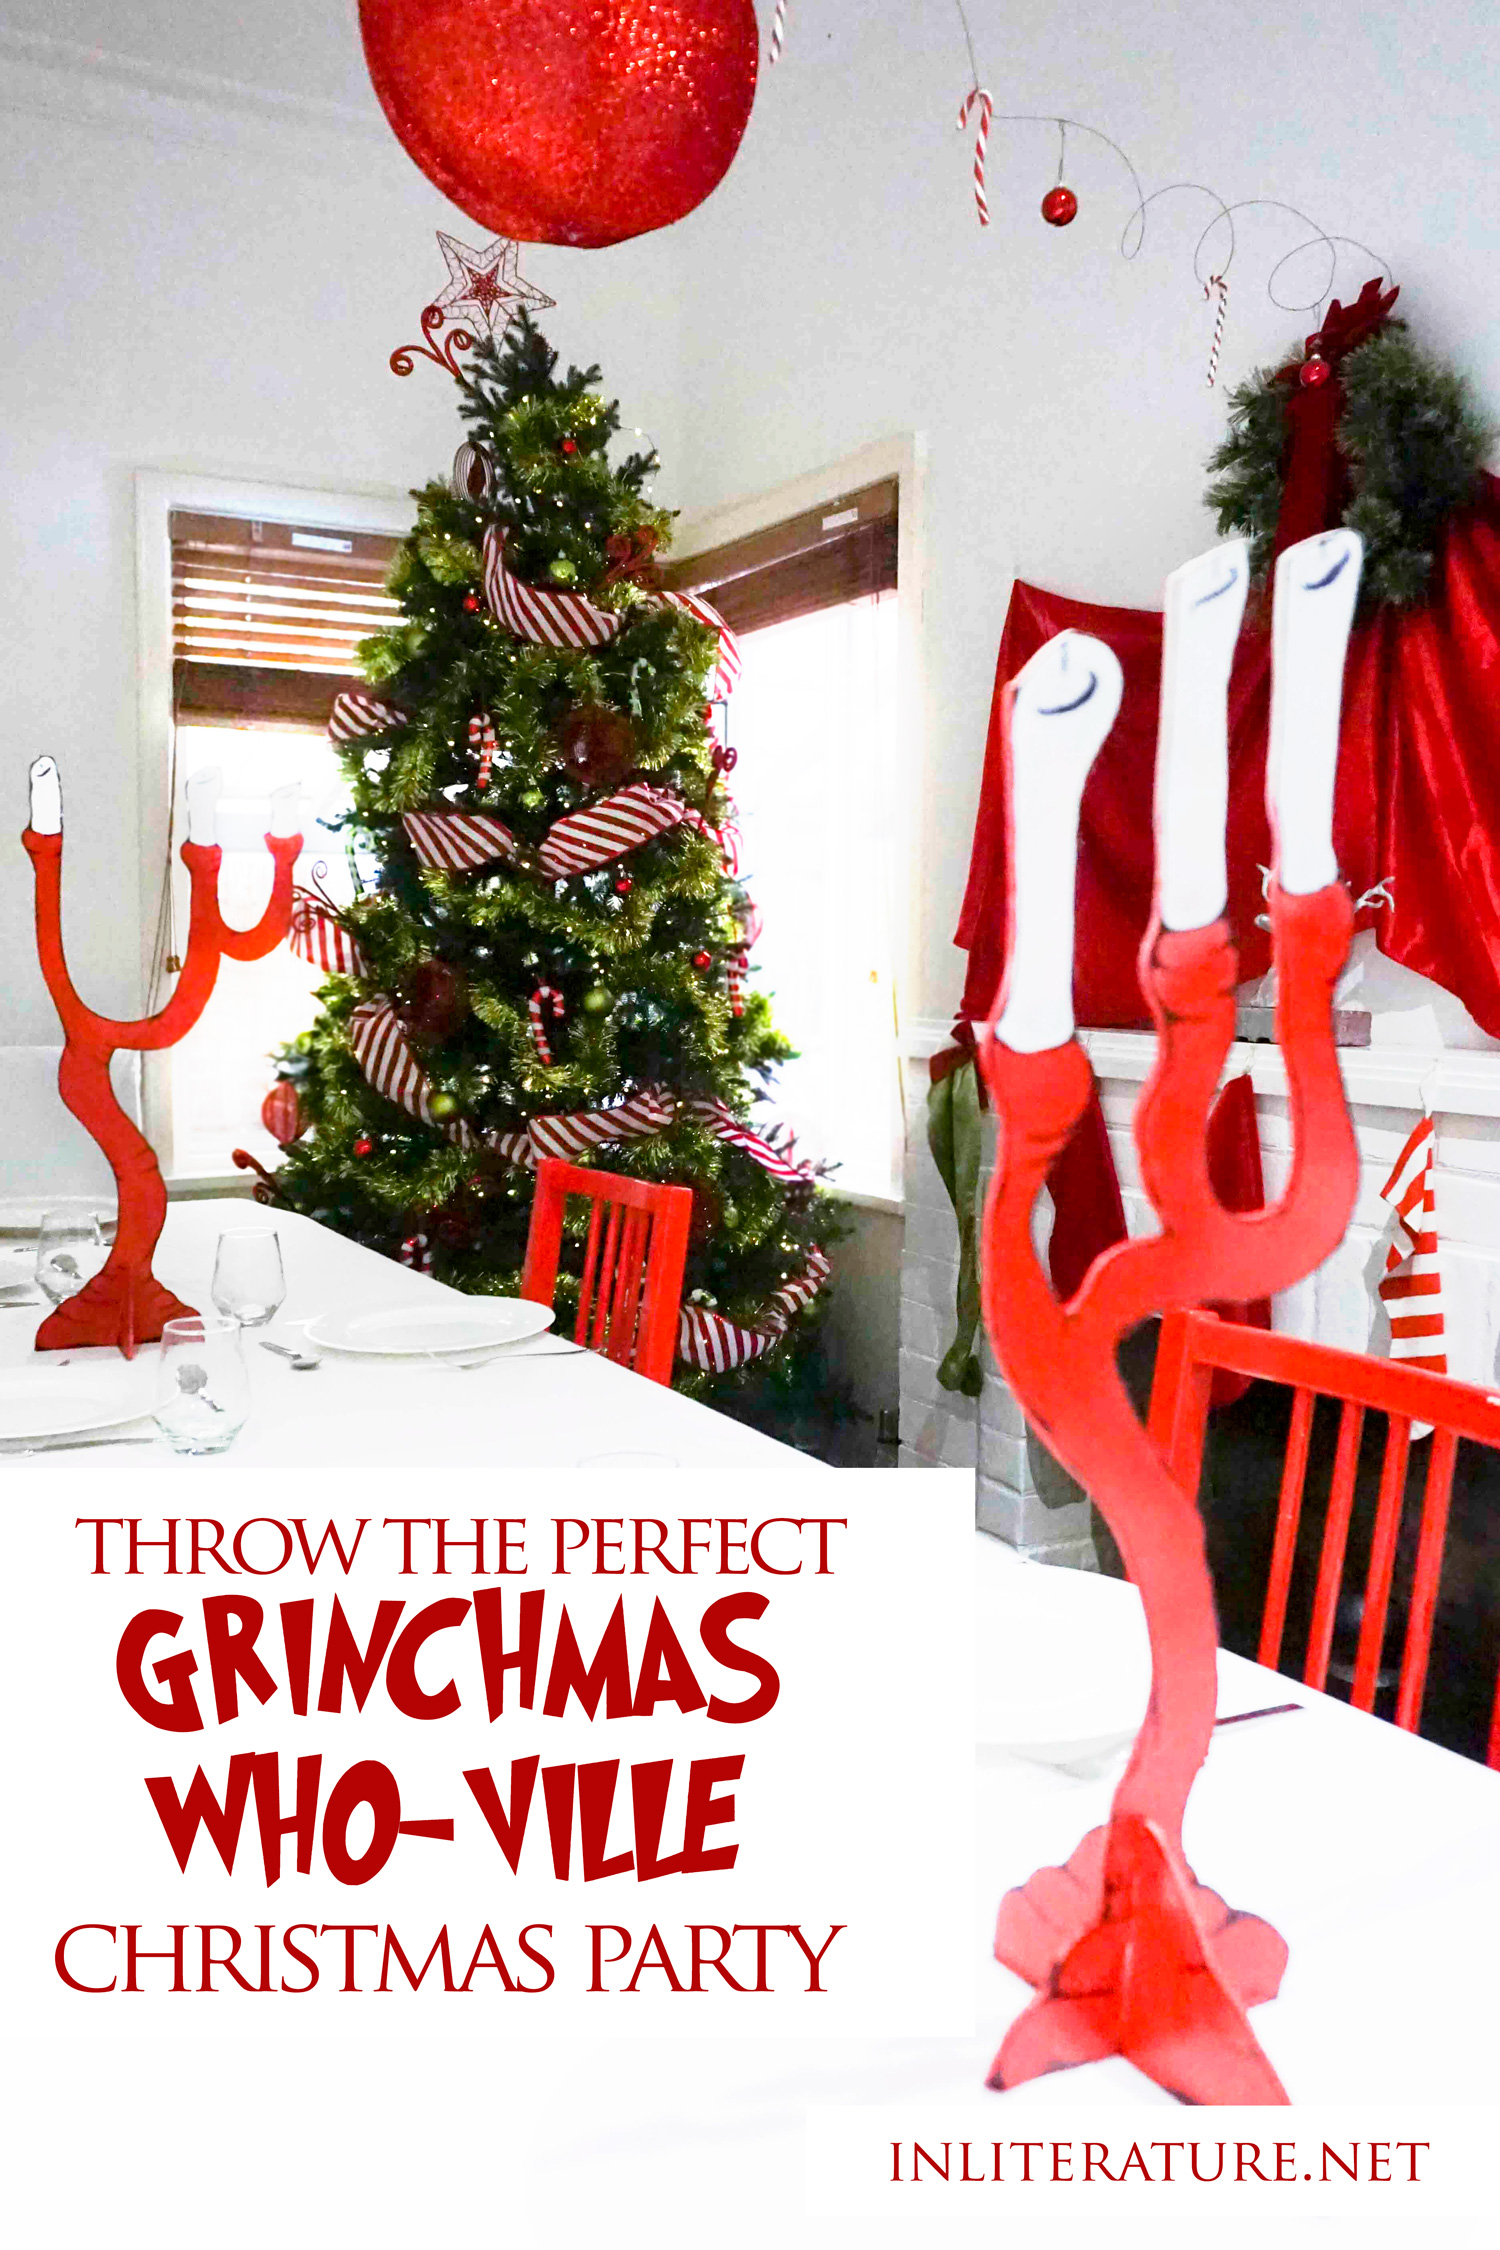 Be inspired this Christmas by How The Grinch Who Stole Christmas! We walk you through how to throw the perfect Who-ville inspired Christmas party this year.